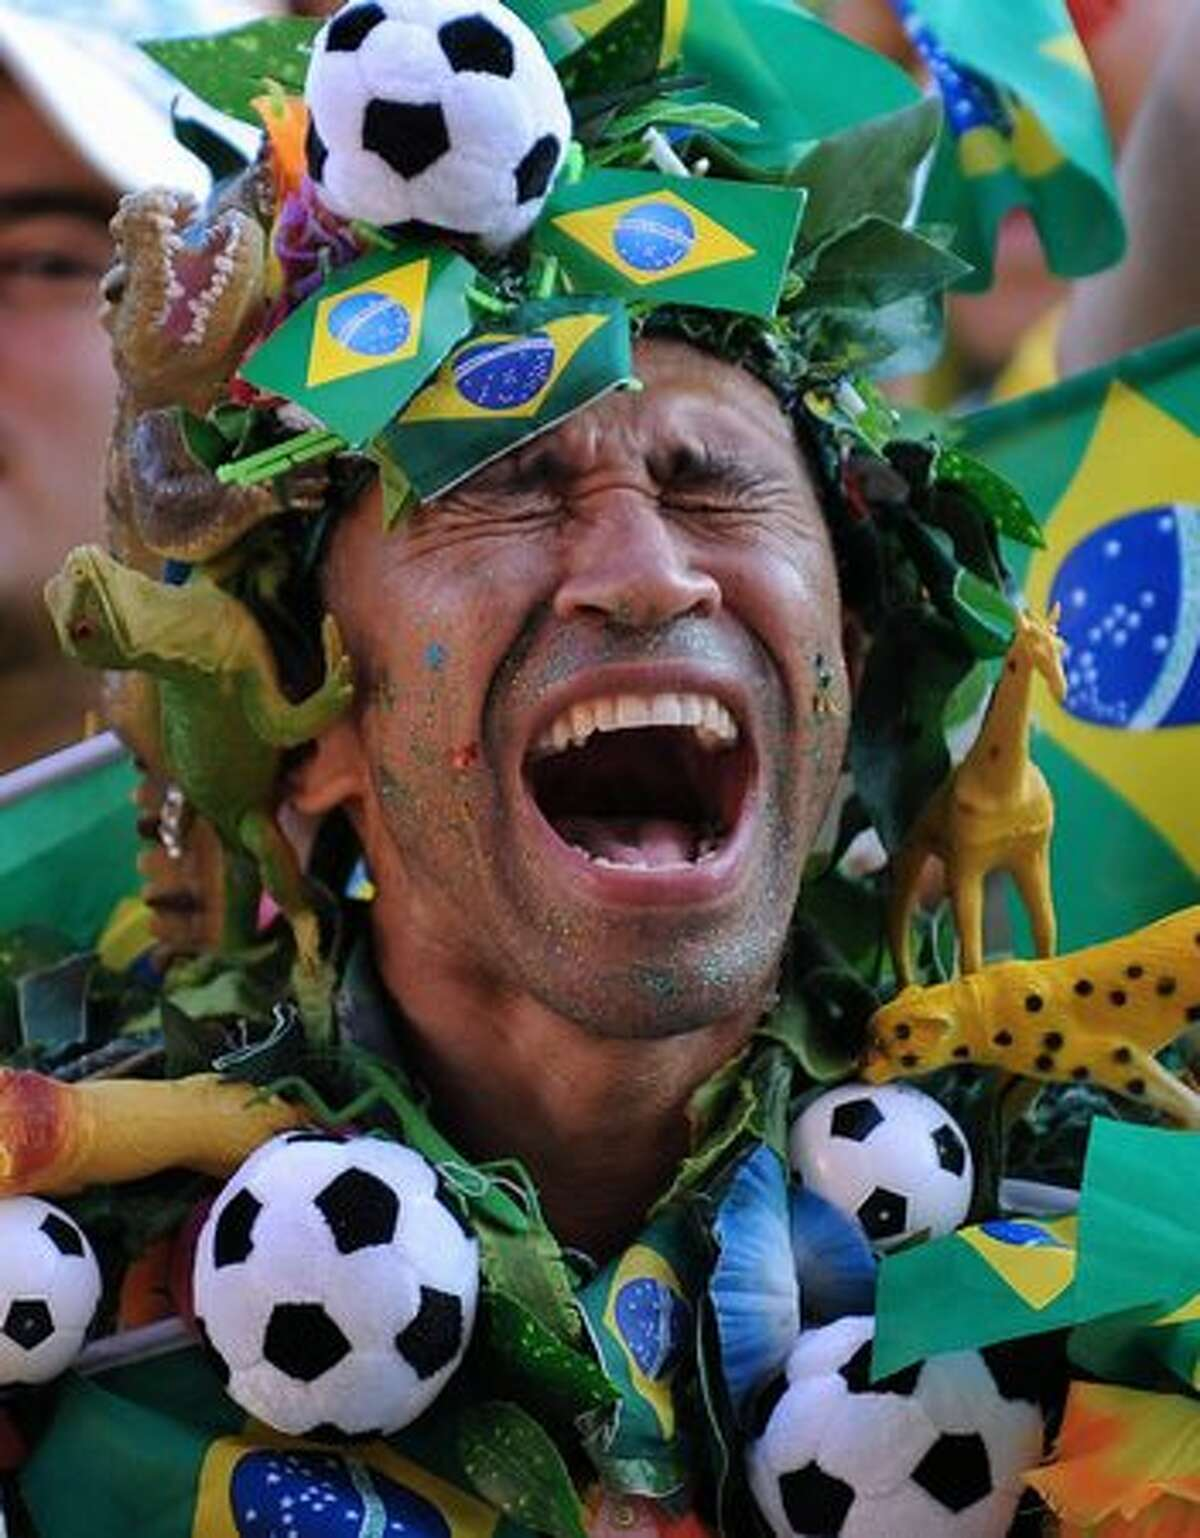 A Brazilian fan celebrates the first goal of the team as he watches the FIFA World Cup South Africa 2010 football match between Brazil and Chile in Copacabana Beach, in Rio de Janeiro, Brazil.